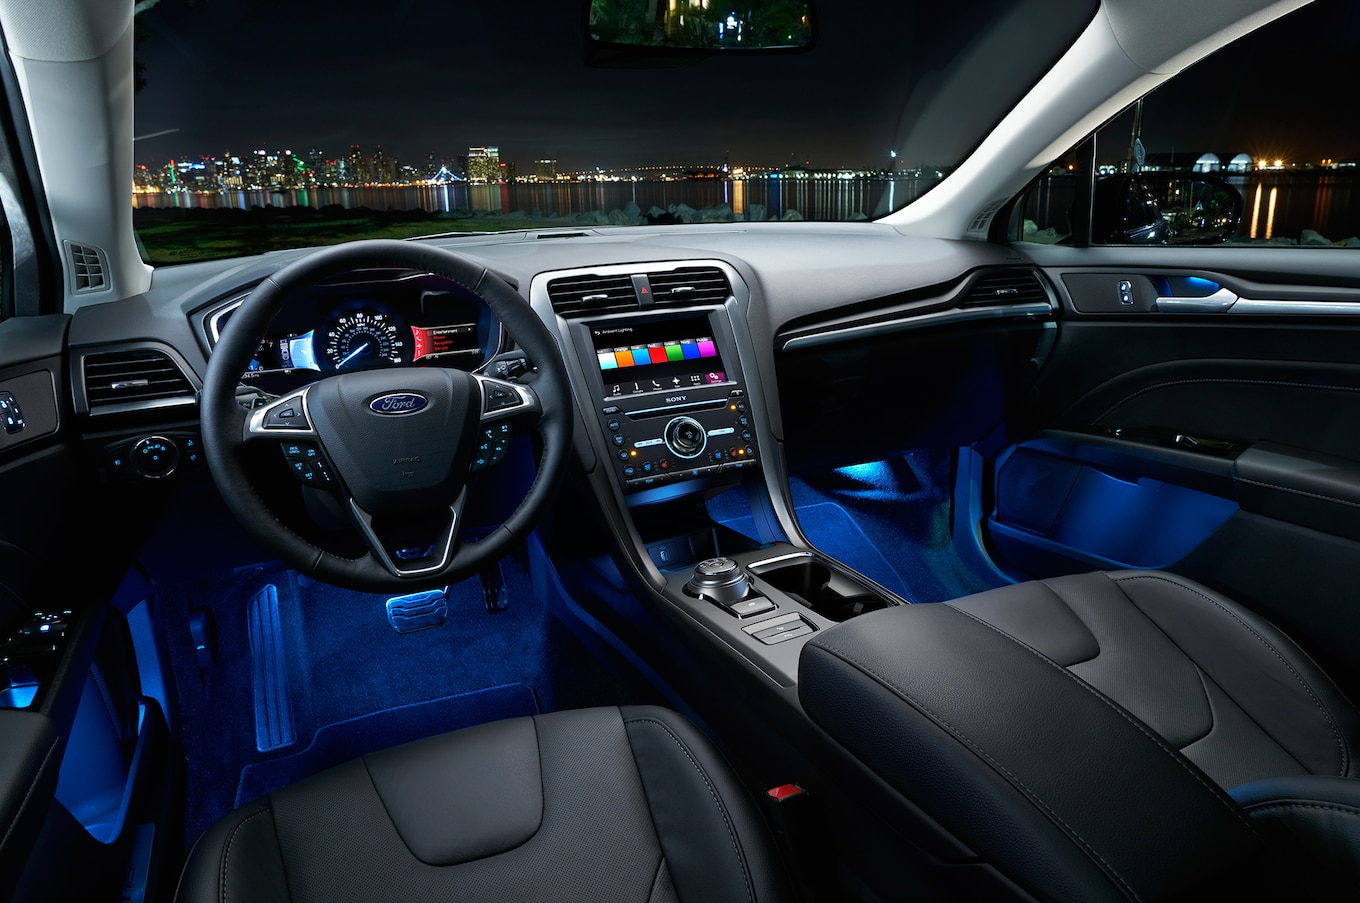 2016 ford mustang interior u s news amp world report - 2016 Ford Fusion Hybrid 2017 2018 Best Cars Reviews